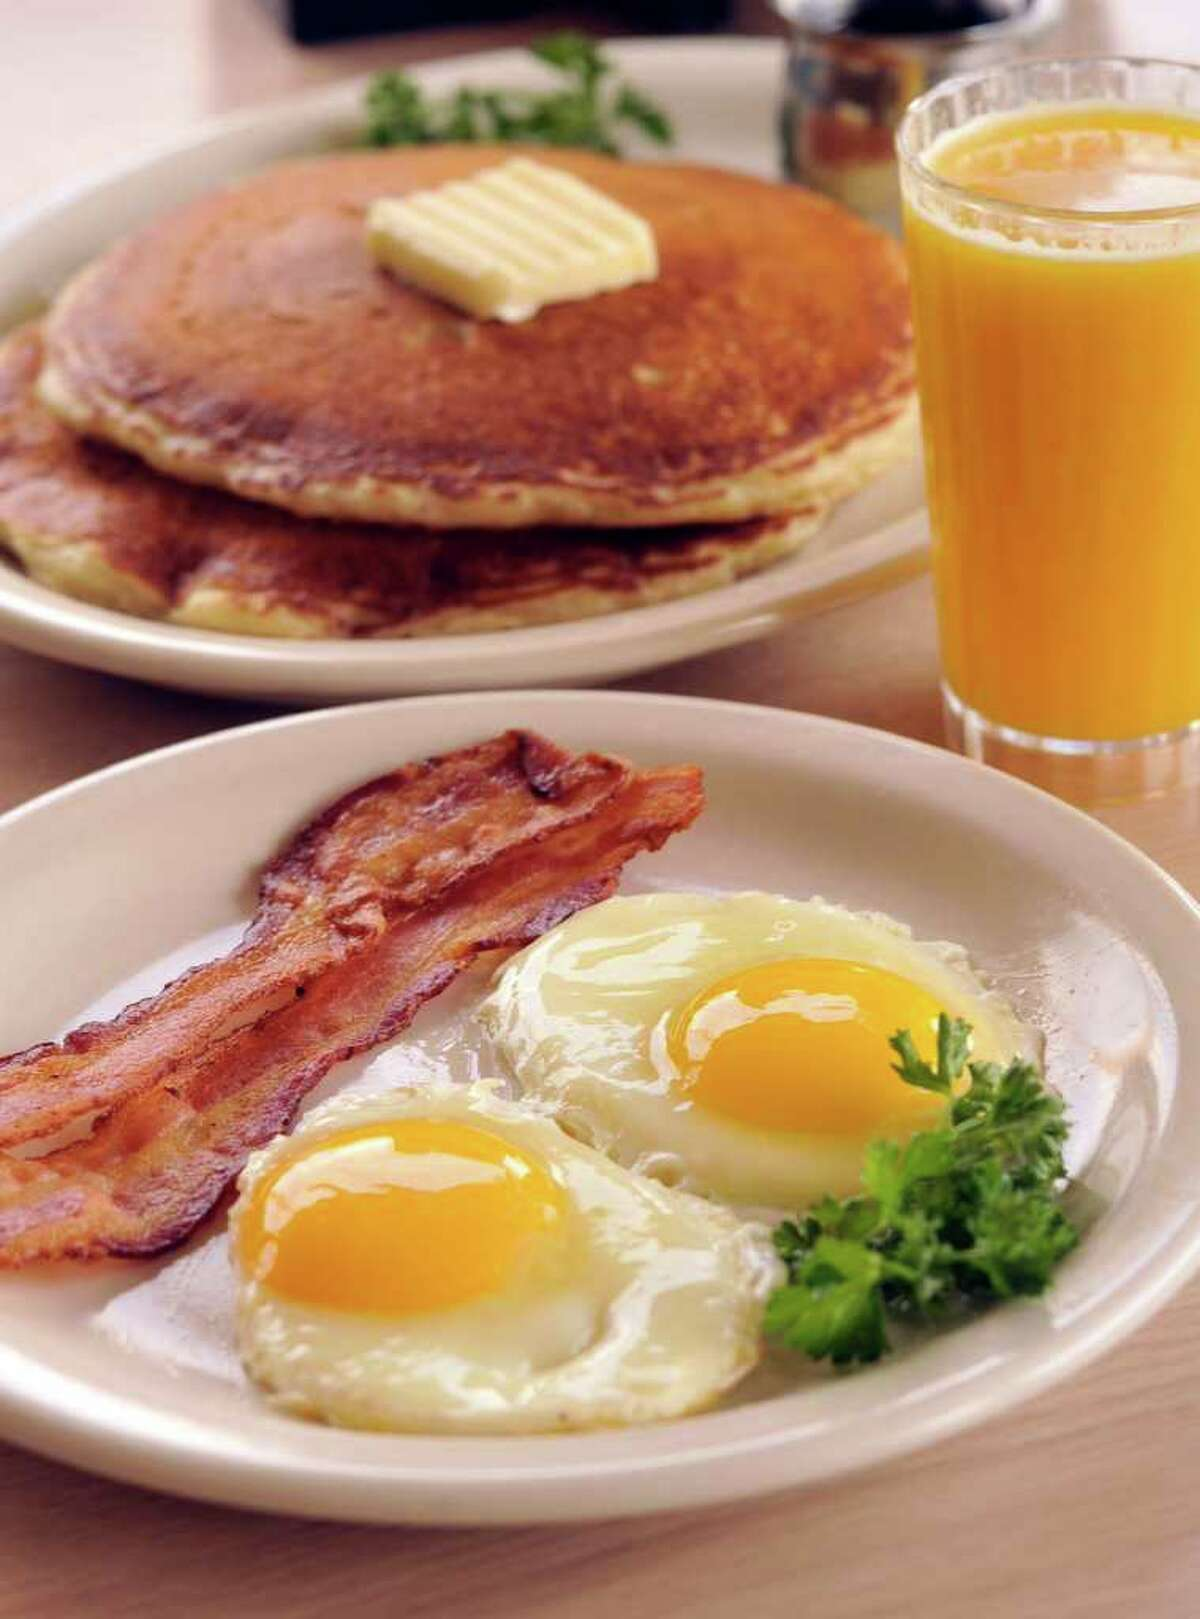 Bacon and Eggs from Jim's Restaurant, voted the Readers' Choice for best service and best longtime favorite.